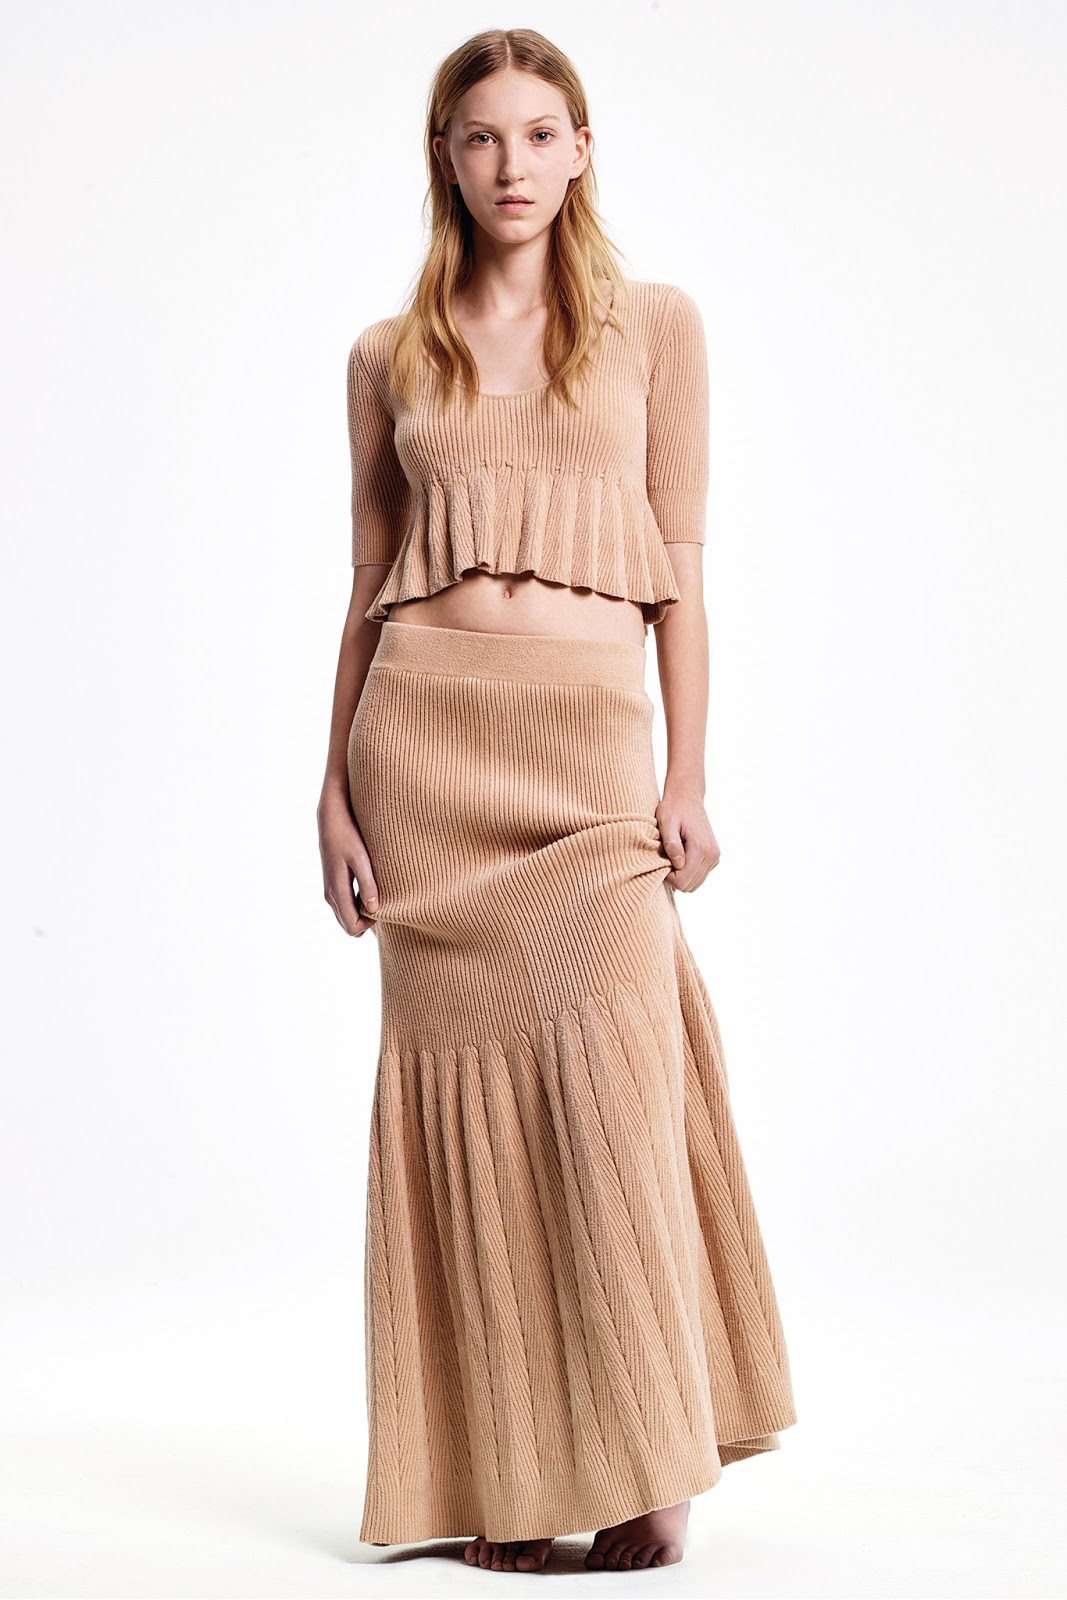 via fashioned by love | Calvin Klein Pre-Fall 2015 | camel trends | 2015